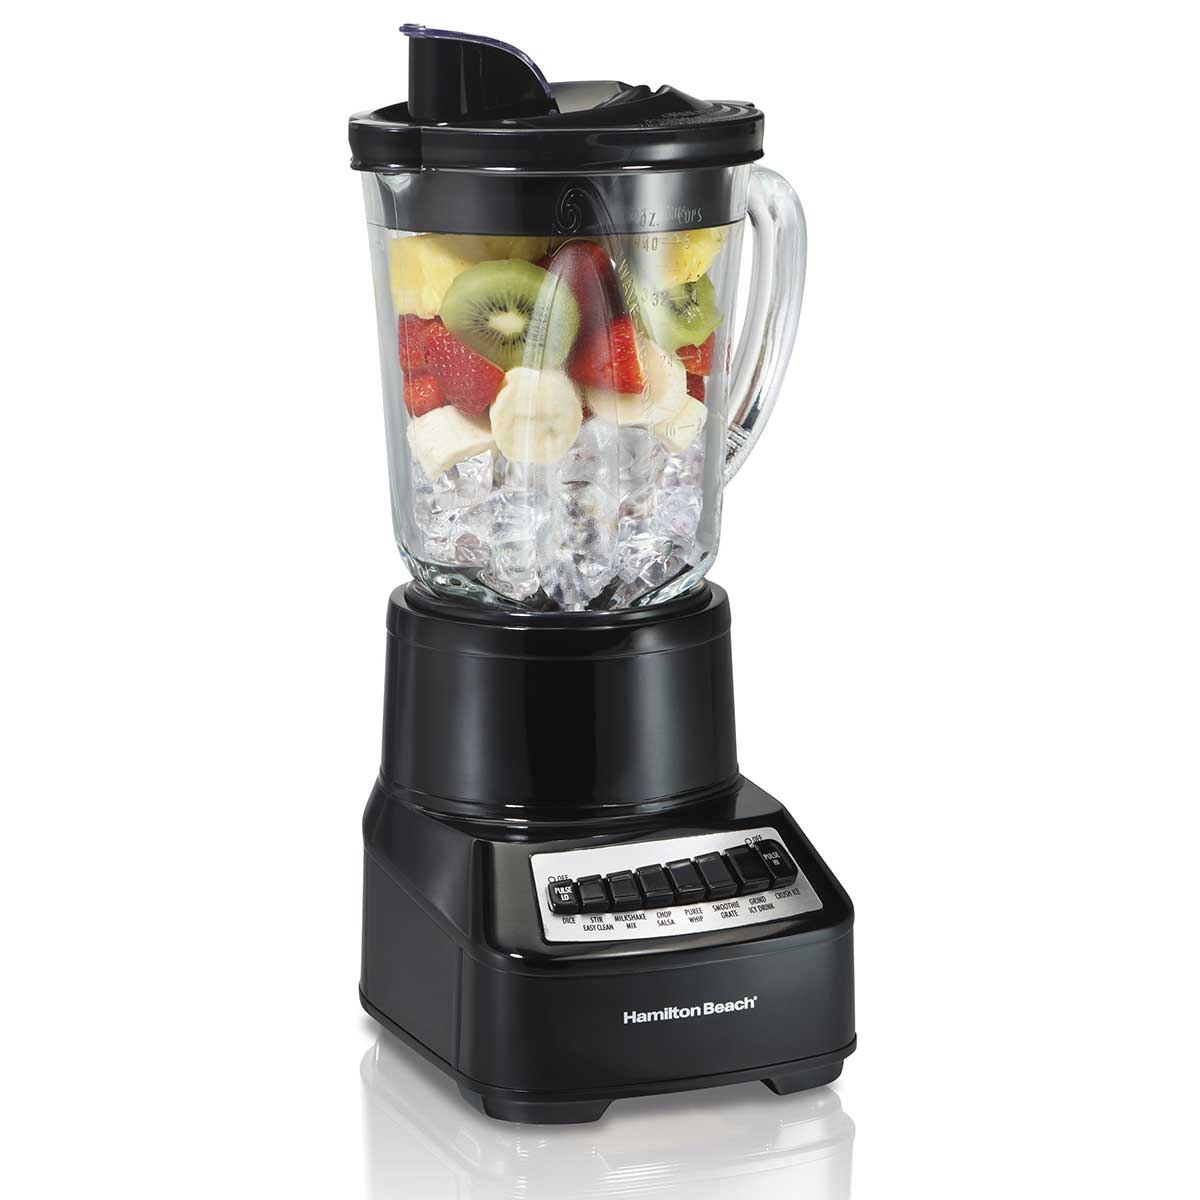 Wave Crusher® Multi-Function Blender with Mess-free 40oz Glass Jar, 700W Black (54220)